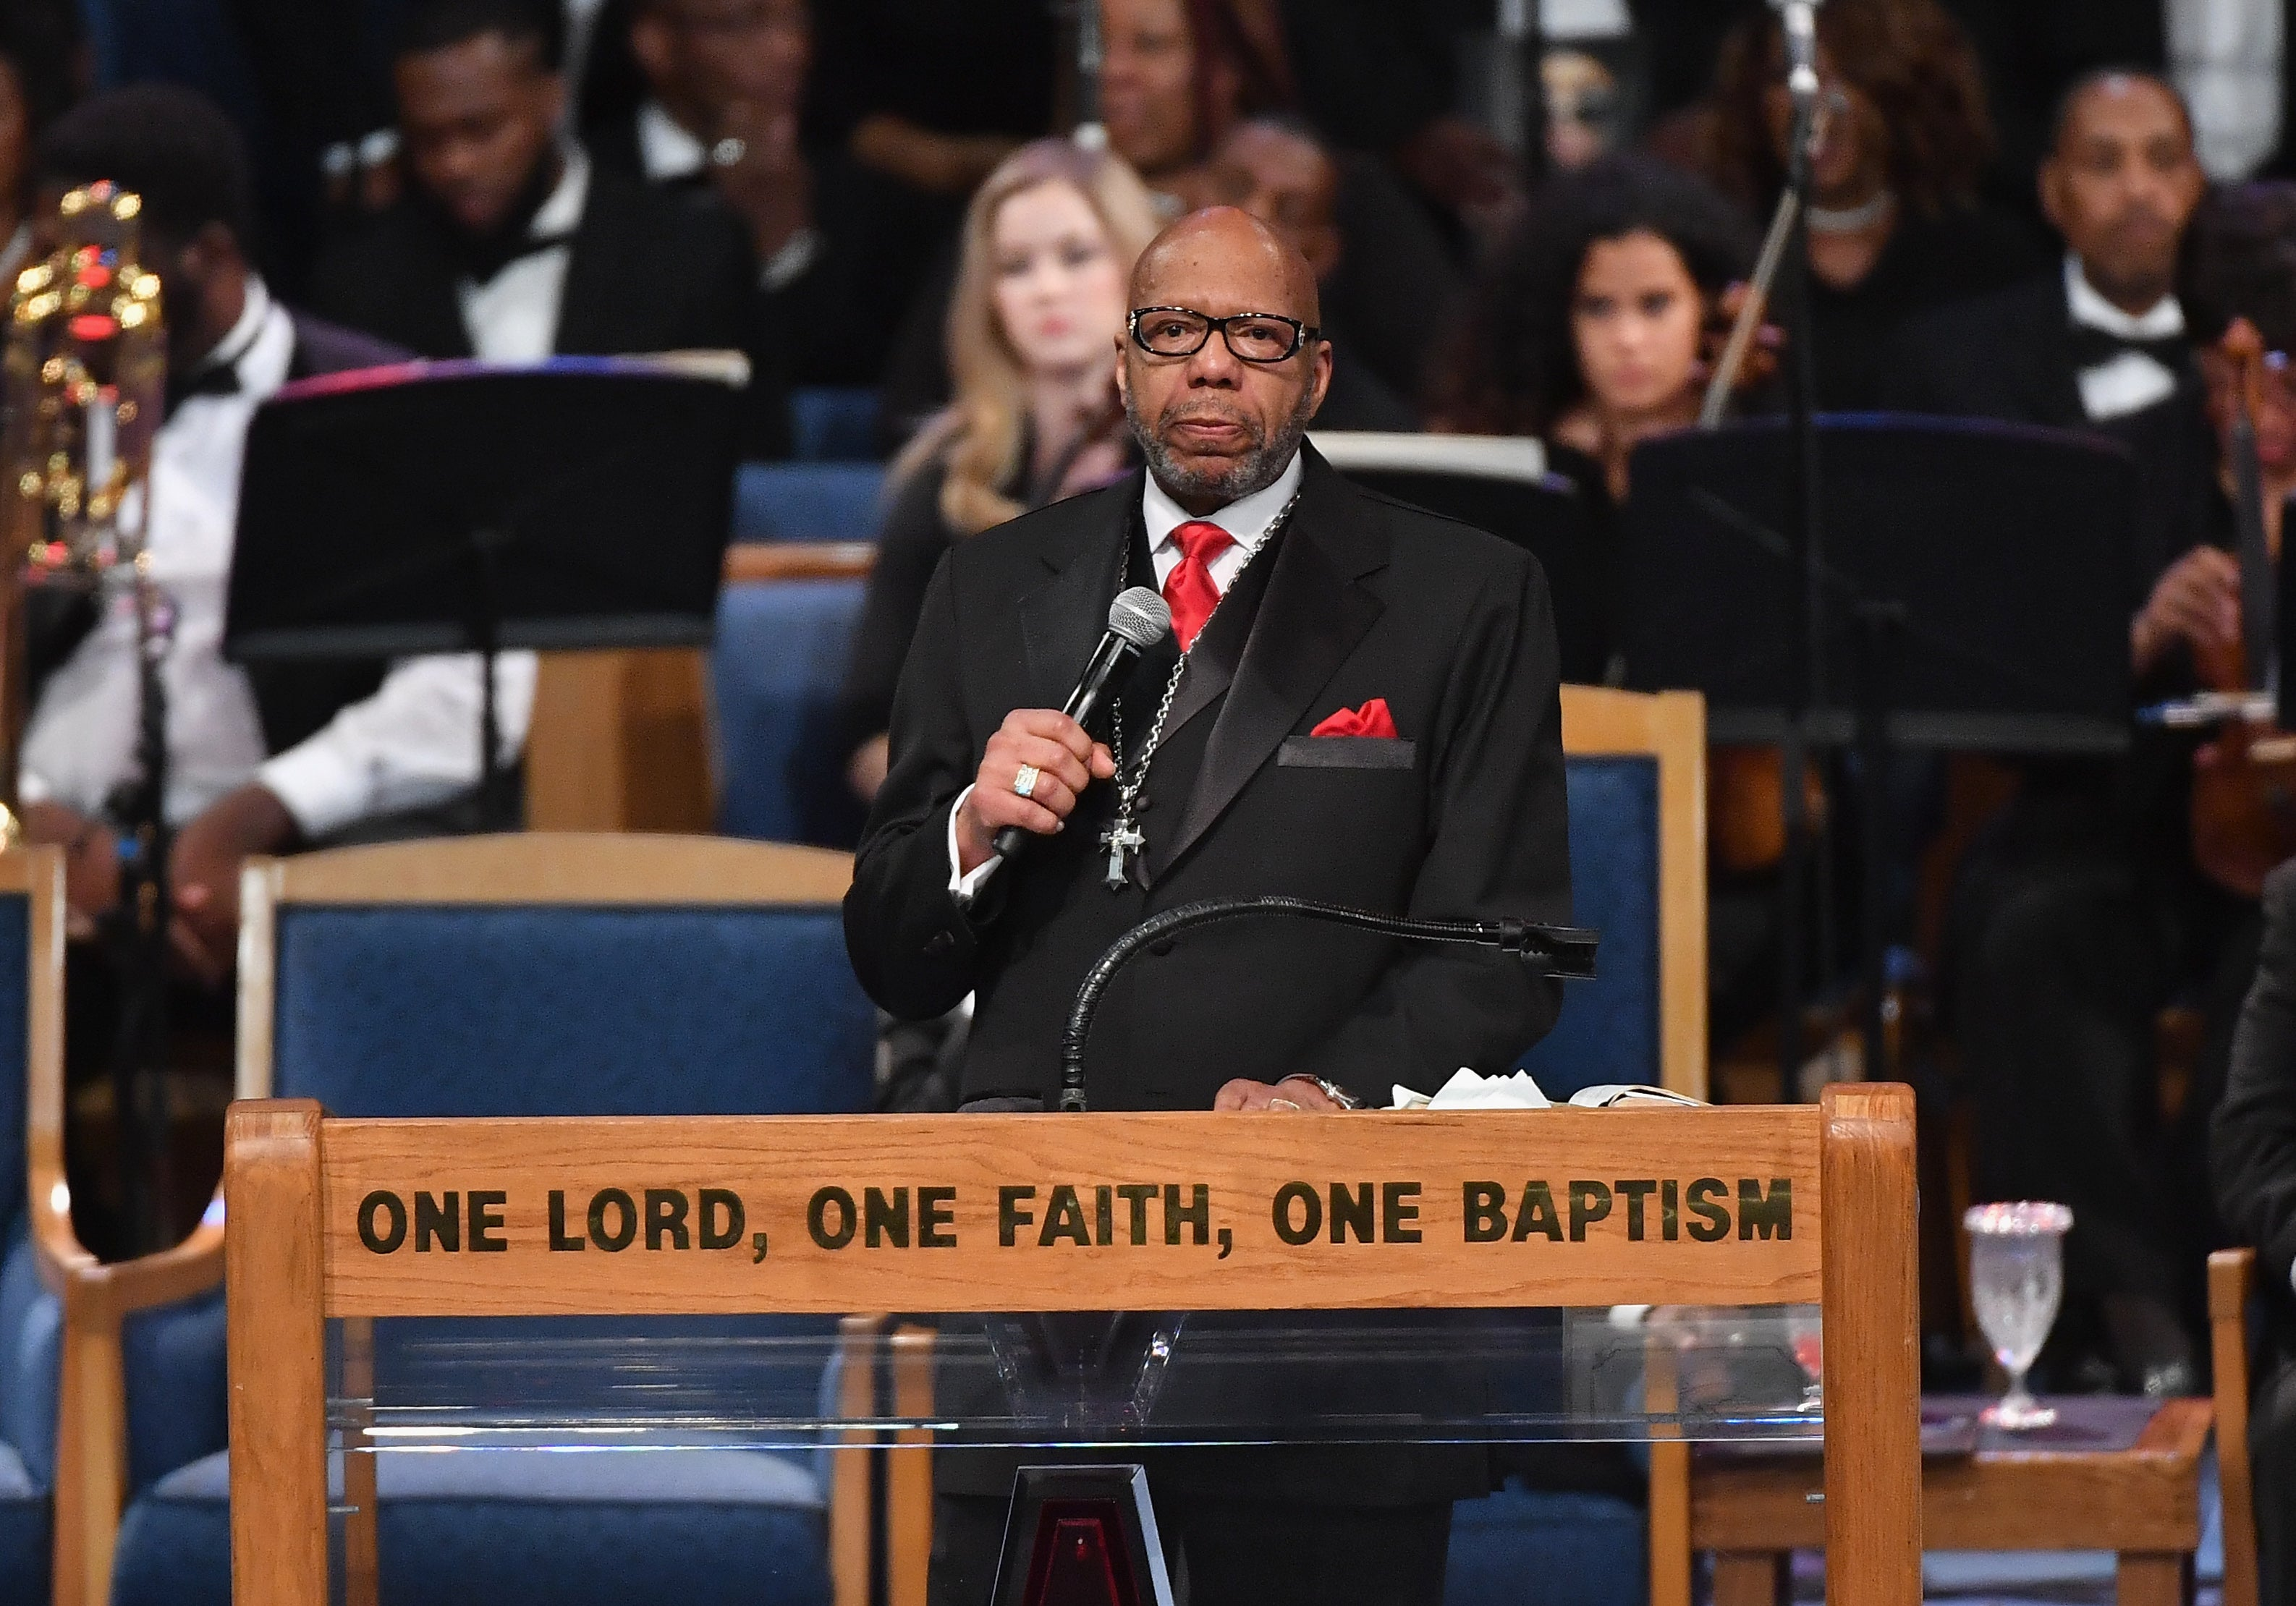 Aretha Franklin's Family Disappointed With Controversial Funeral Eulogy, Nephew Says